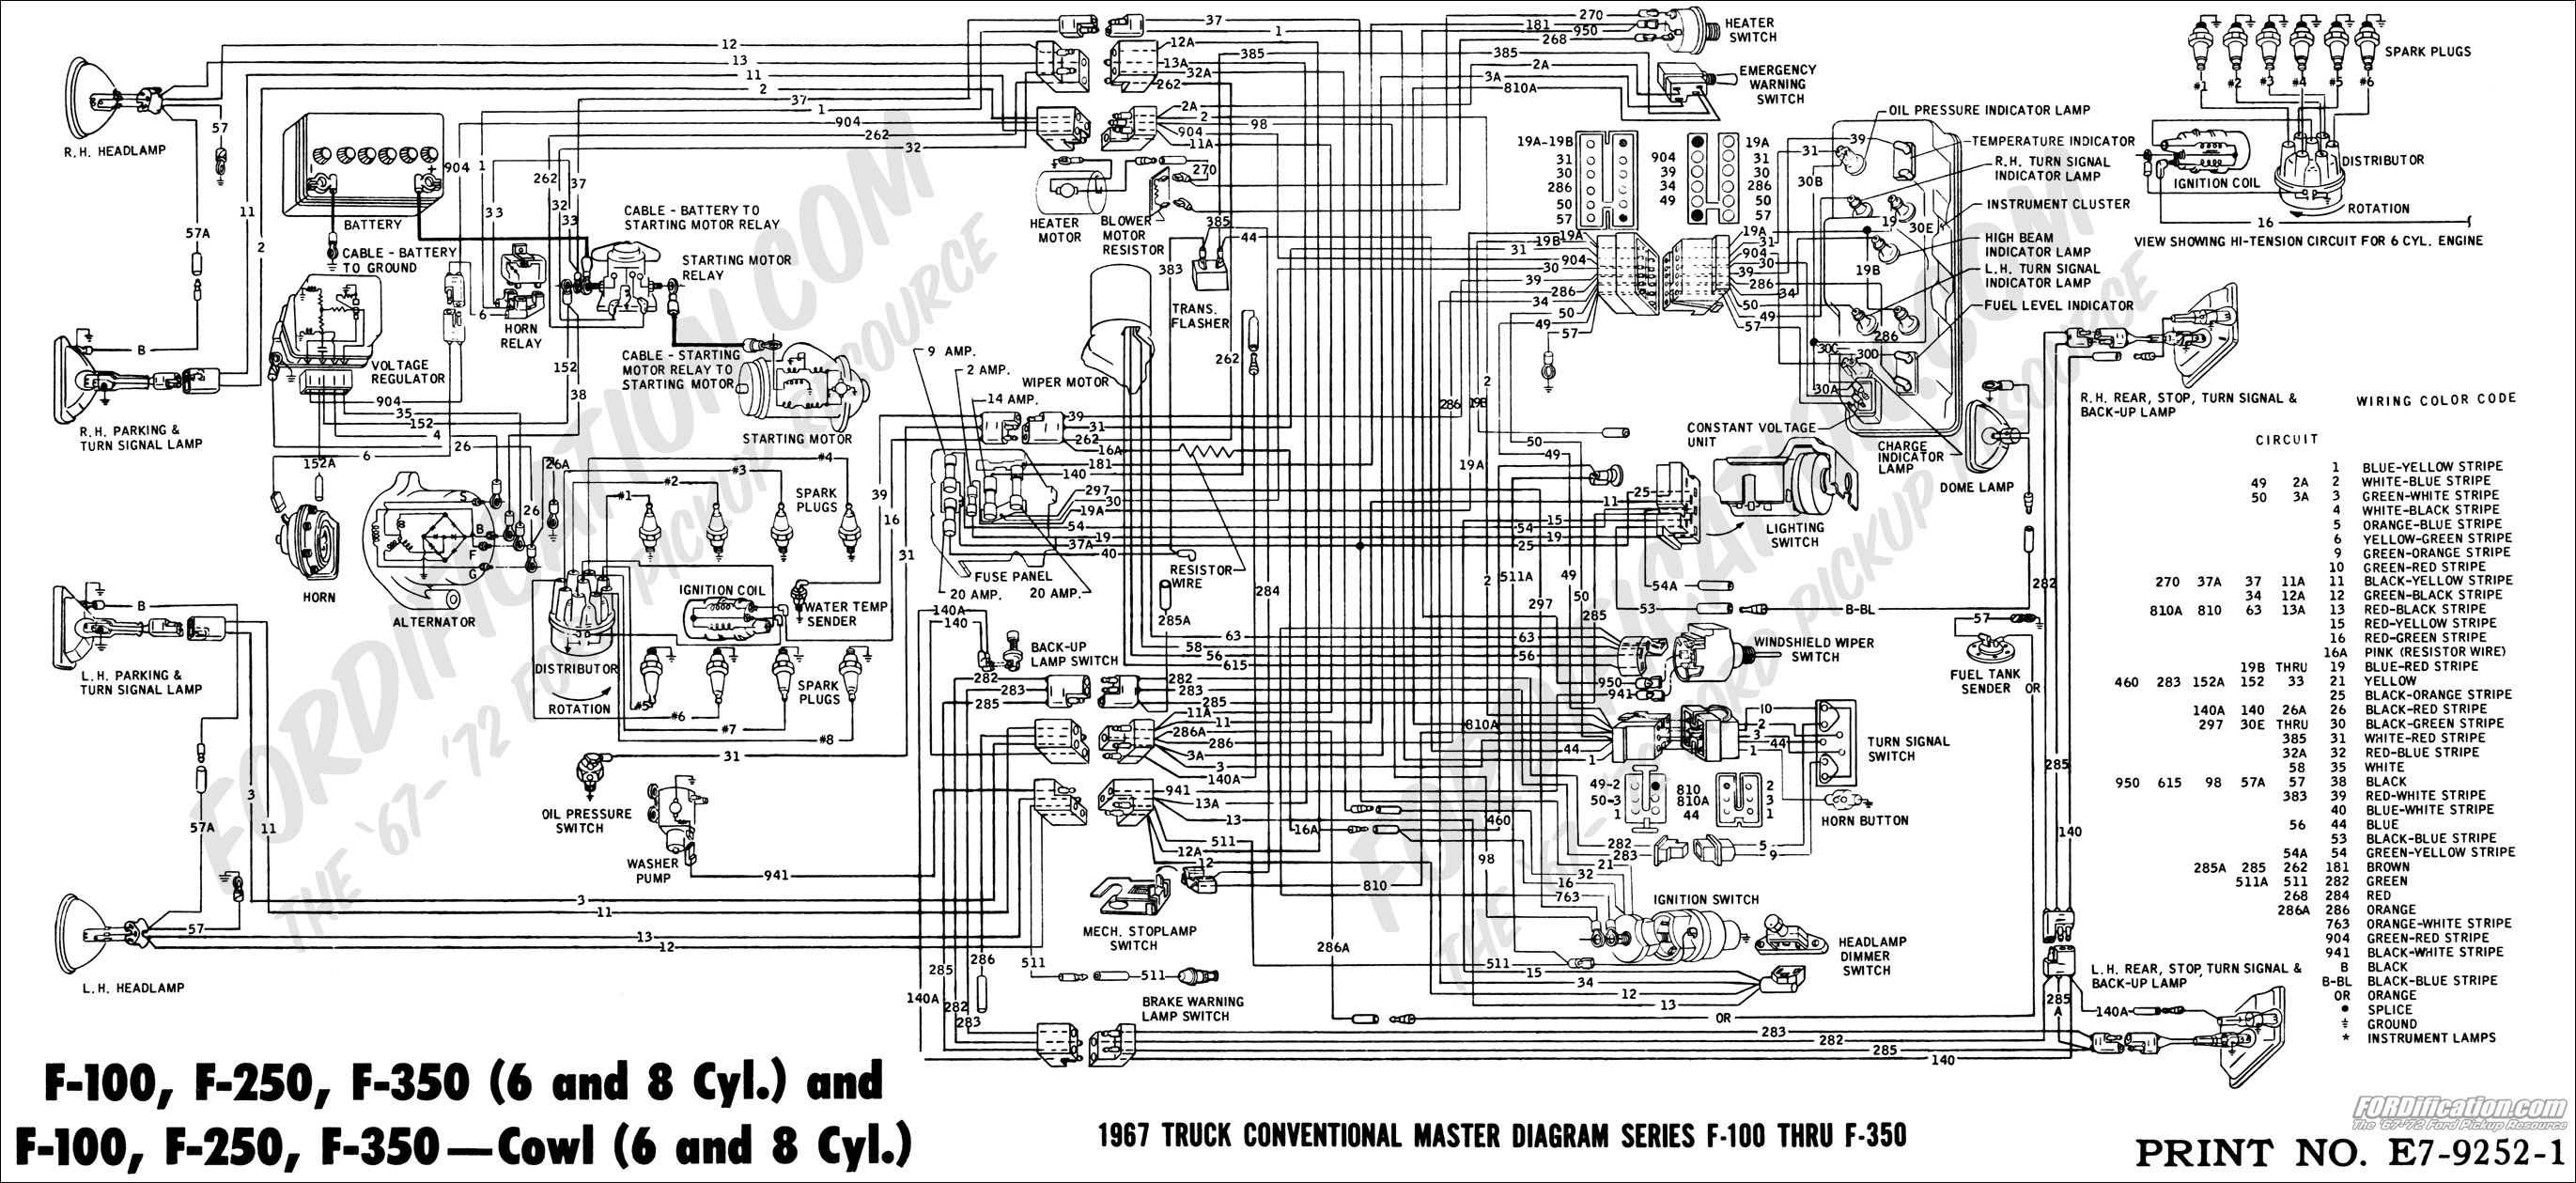 1965 Ford Truck Wiring Harness Diagram Data 1954 Chevy 1948 1967 F 100 Schema Diagrams Nova